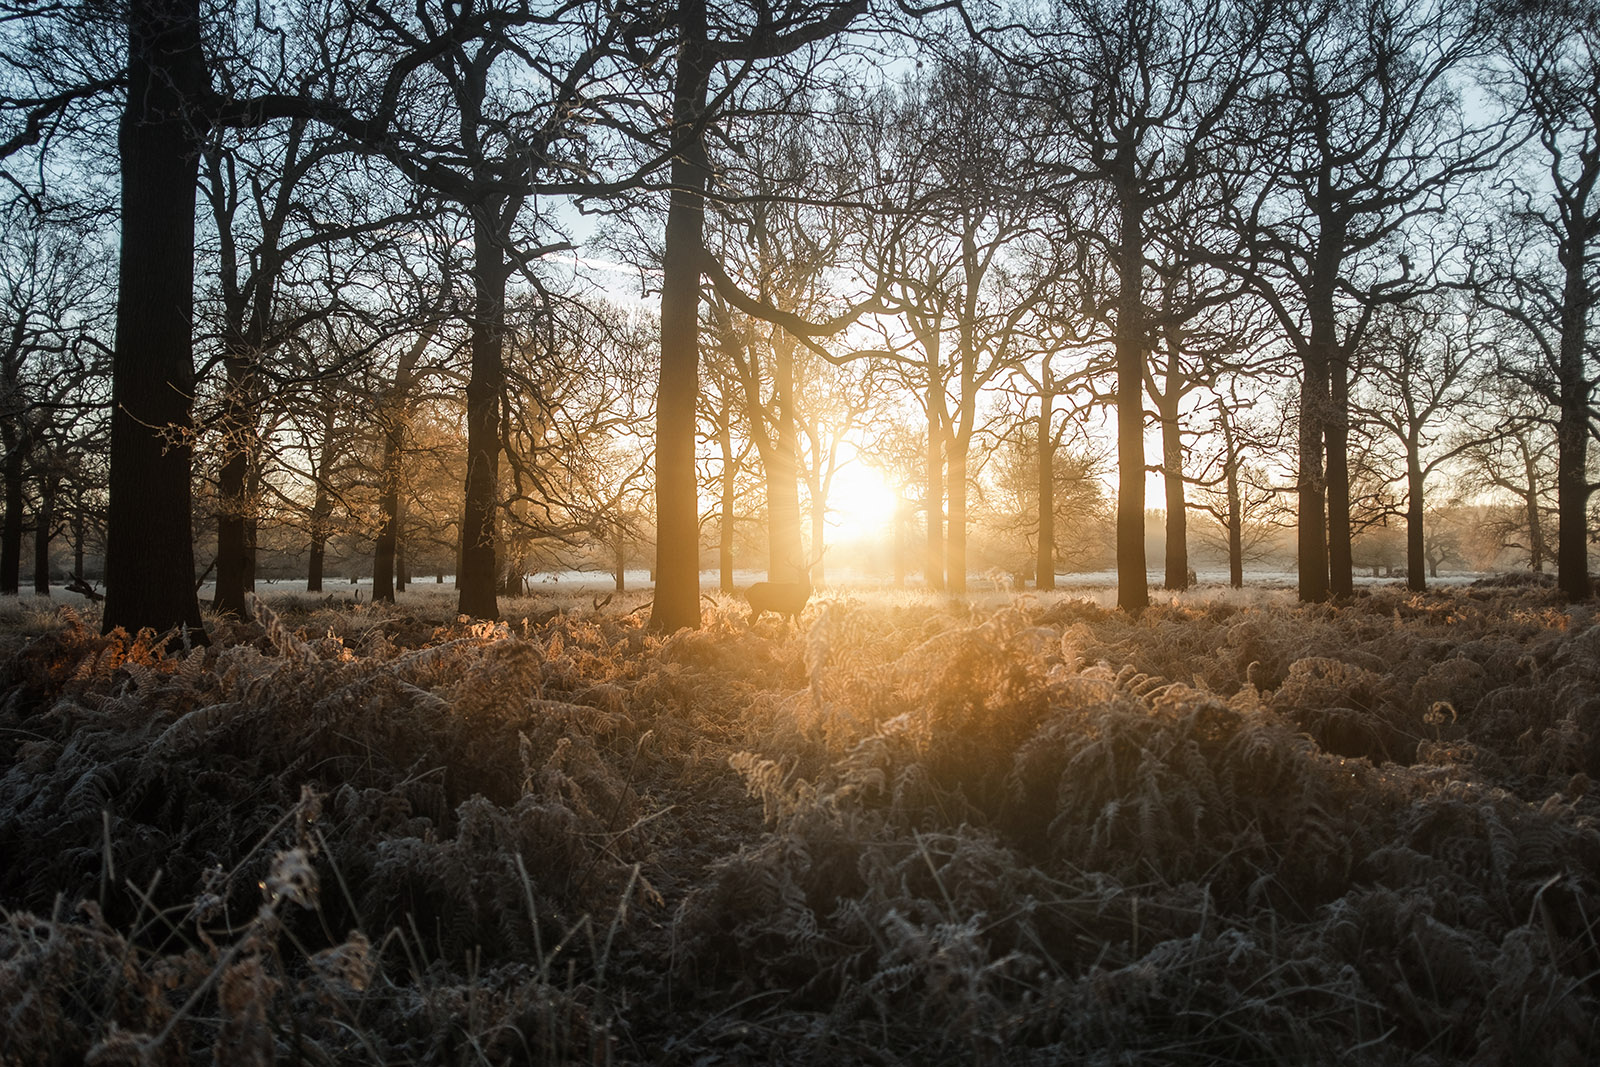 simon-wilkes-winter-light-04